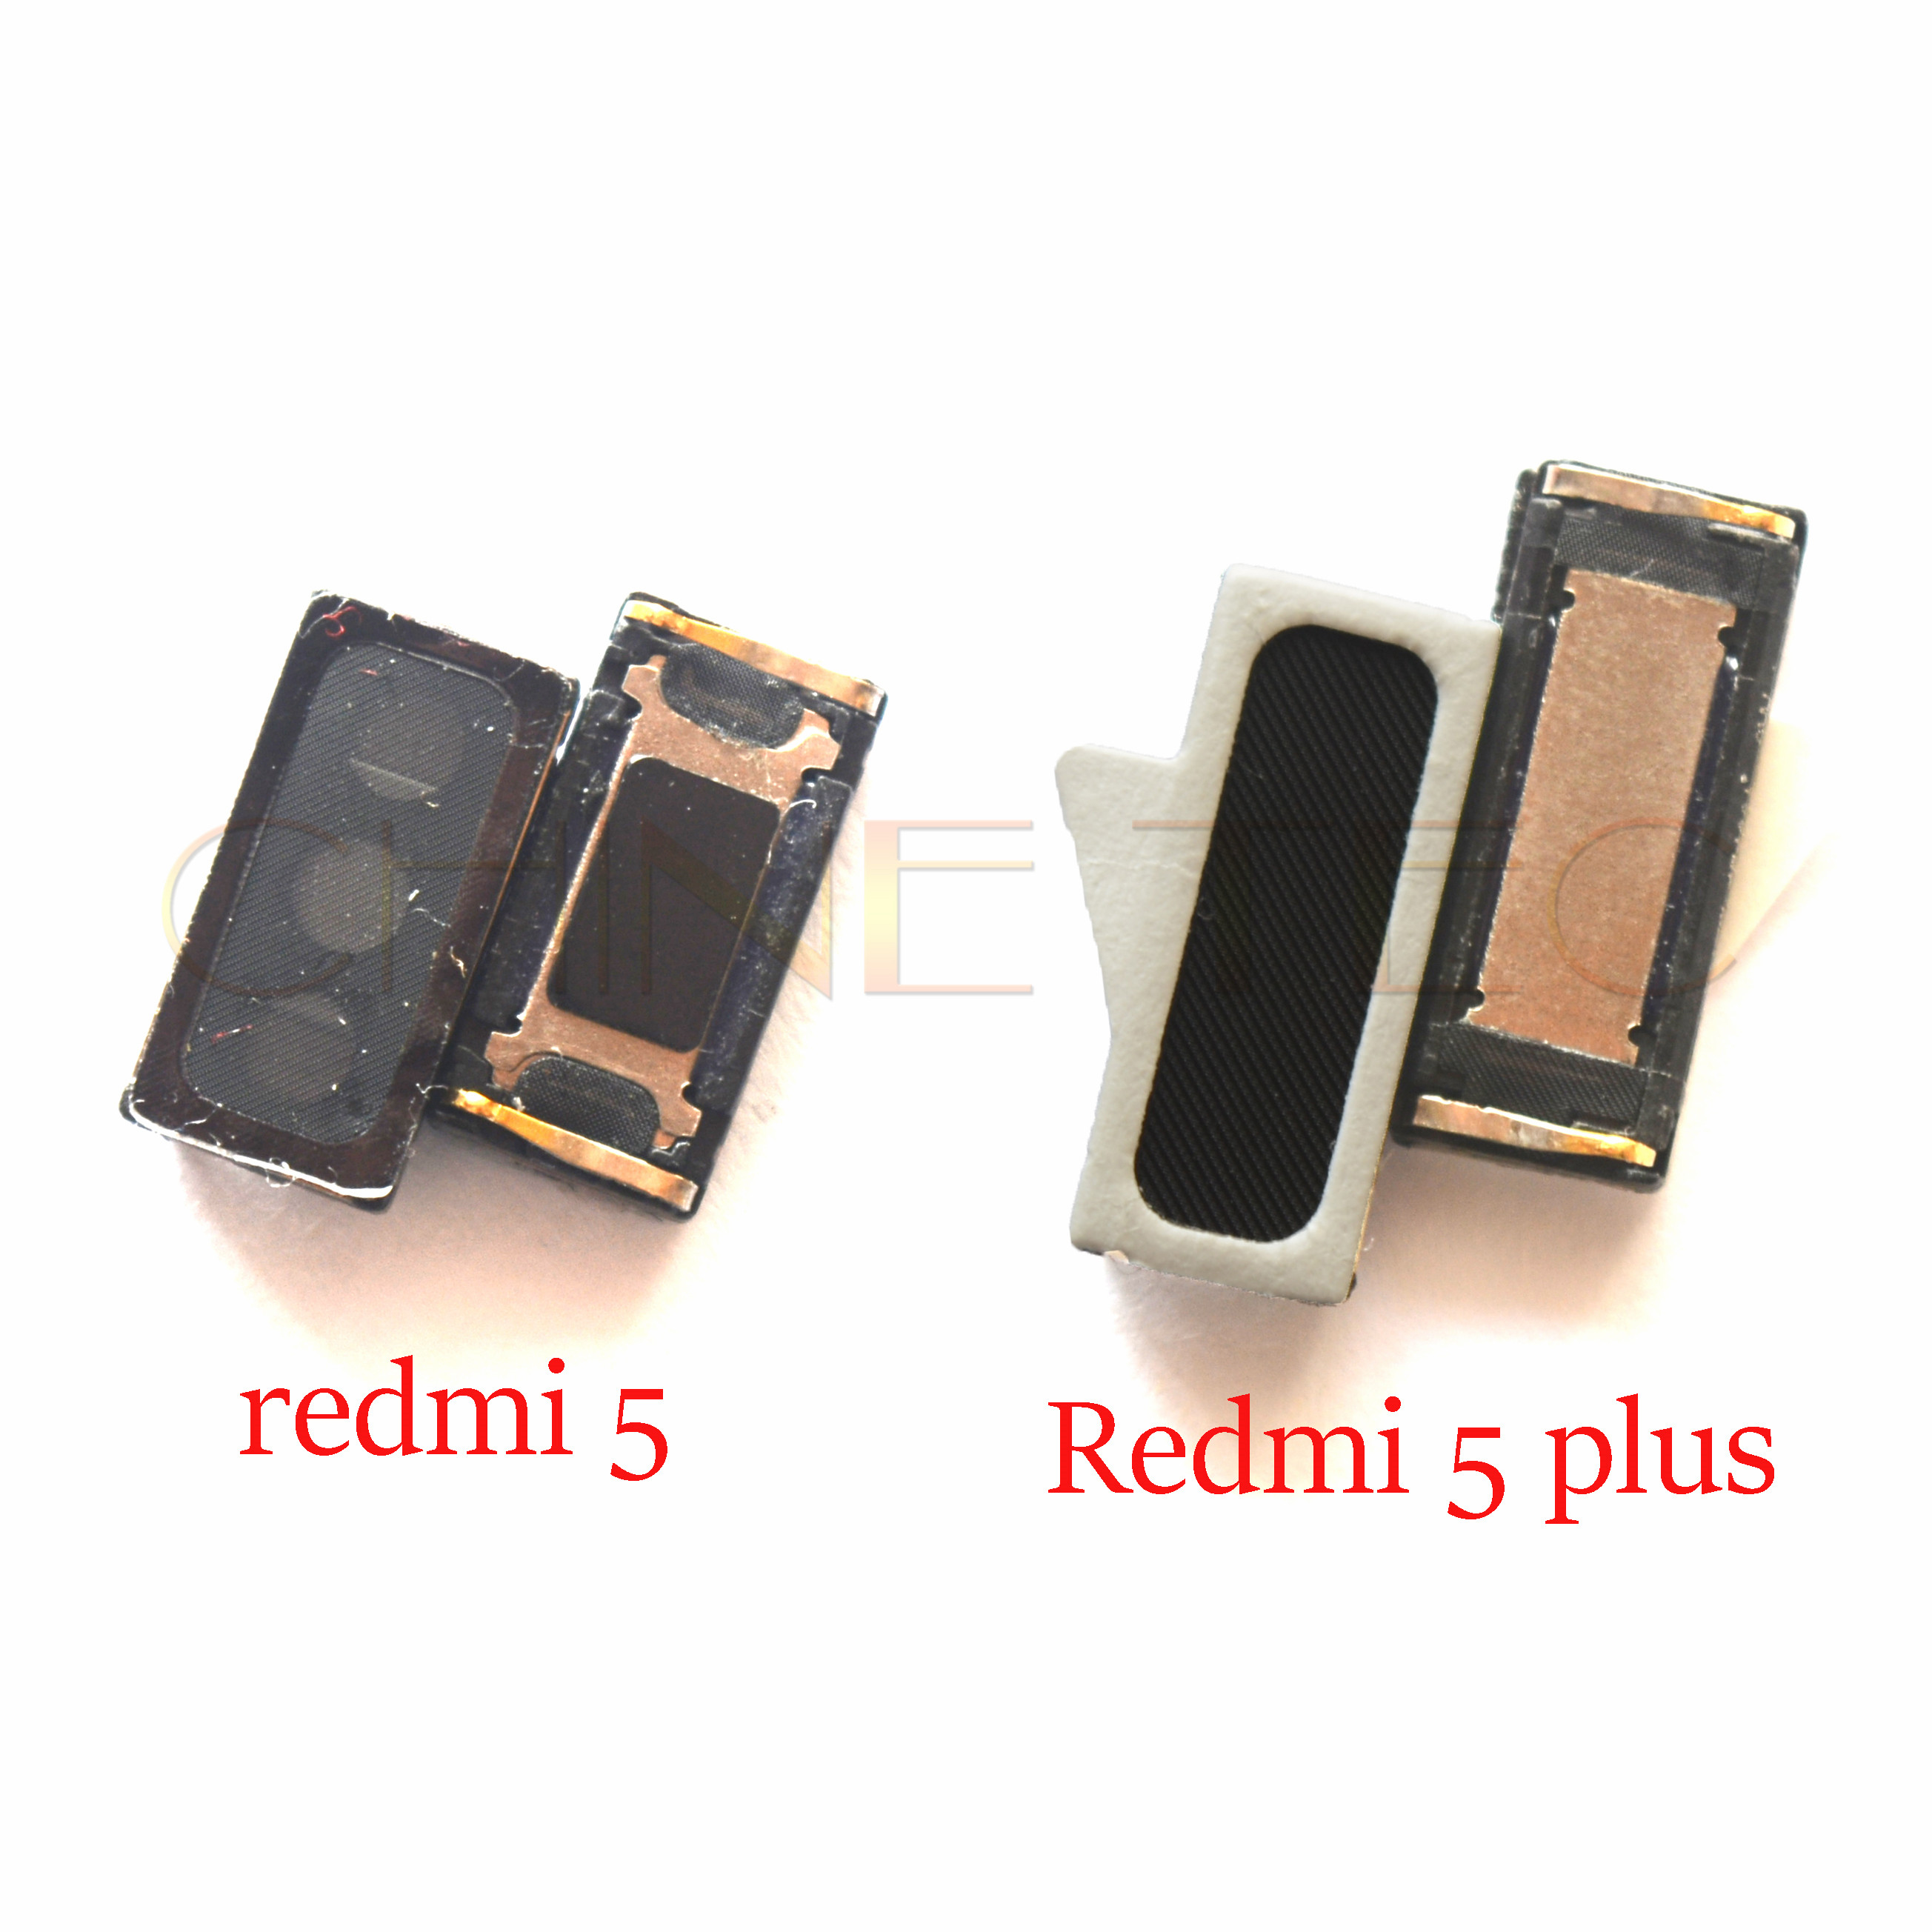 2x new earpiece Ear Speaker for Xiaomi  Mi A1 A2 lite Redmi 5 5 plus 5A redmi Note 5A  Y1 Y2 S2 (Redmi Y1/ lite /Prime ) MiA1 marvel glass iphone case